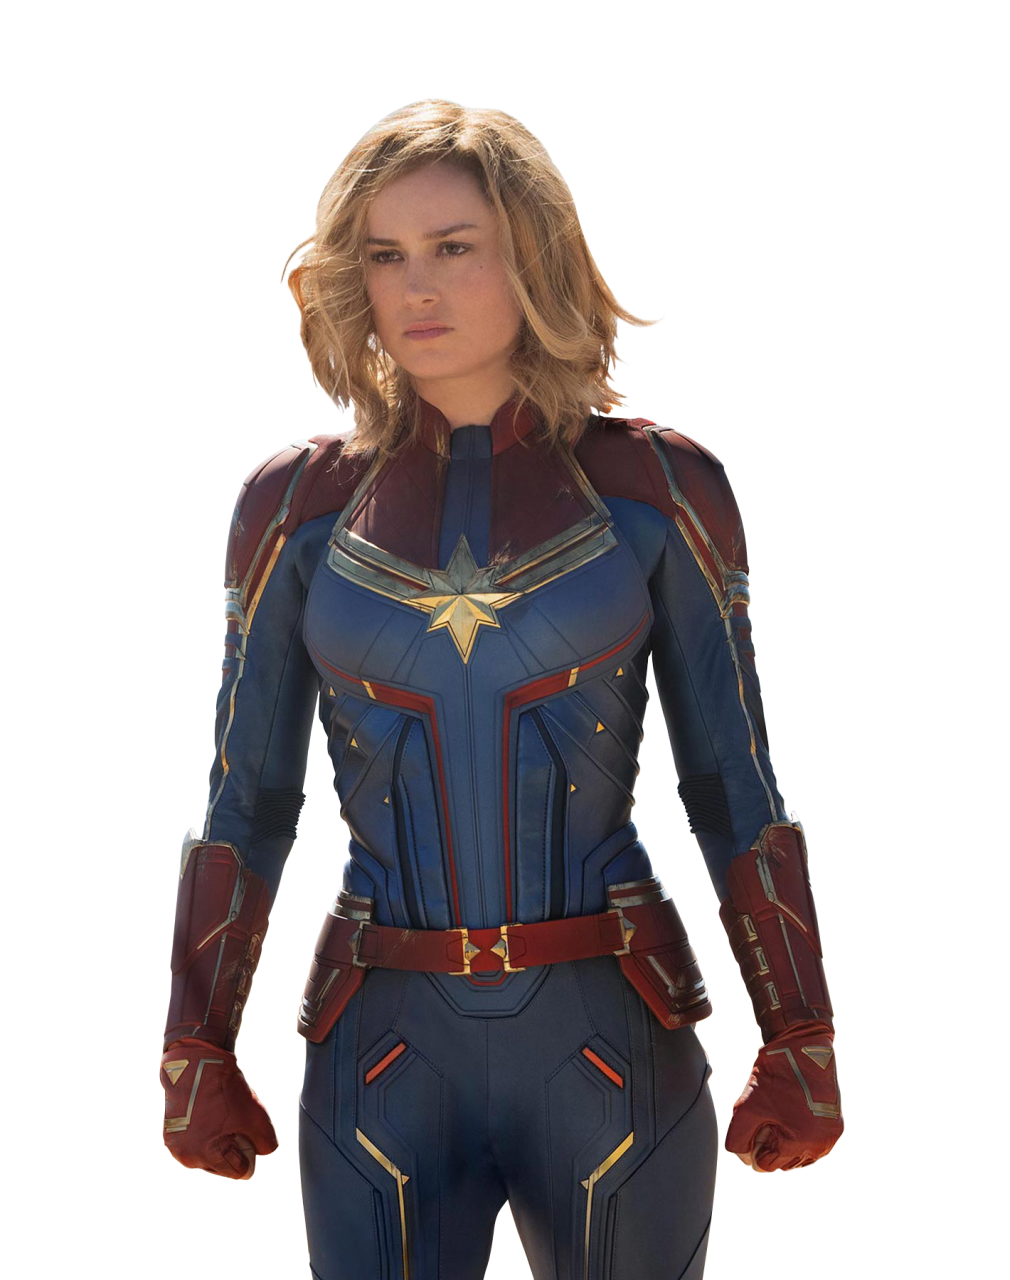 Captain marvel png. Brie larson from infinity